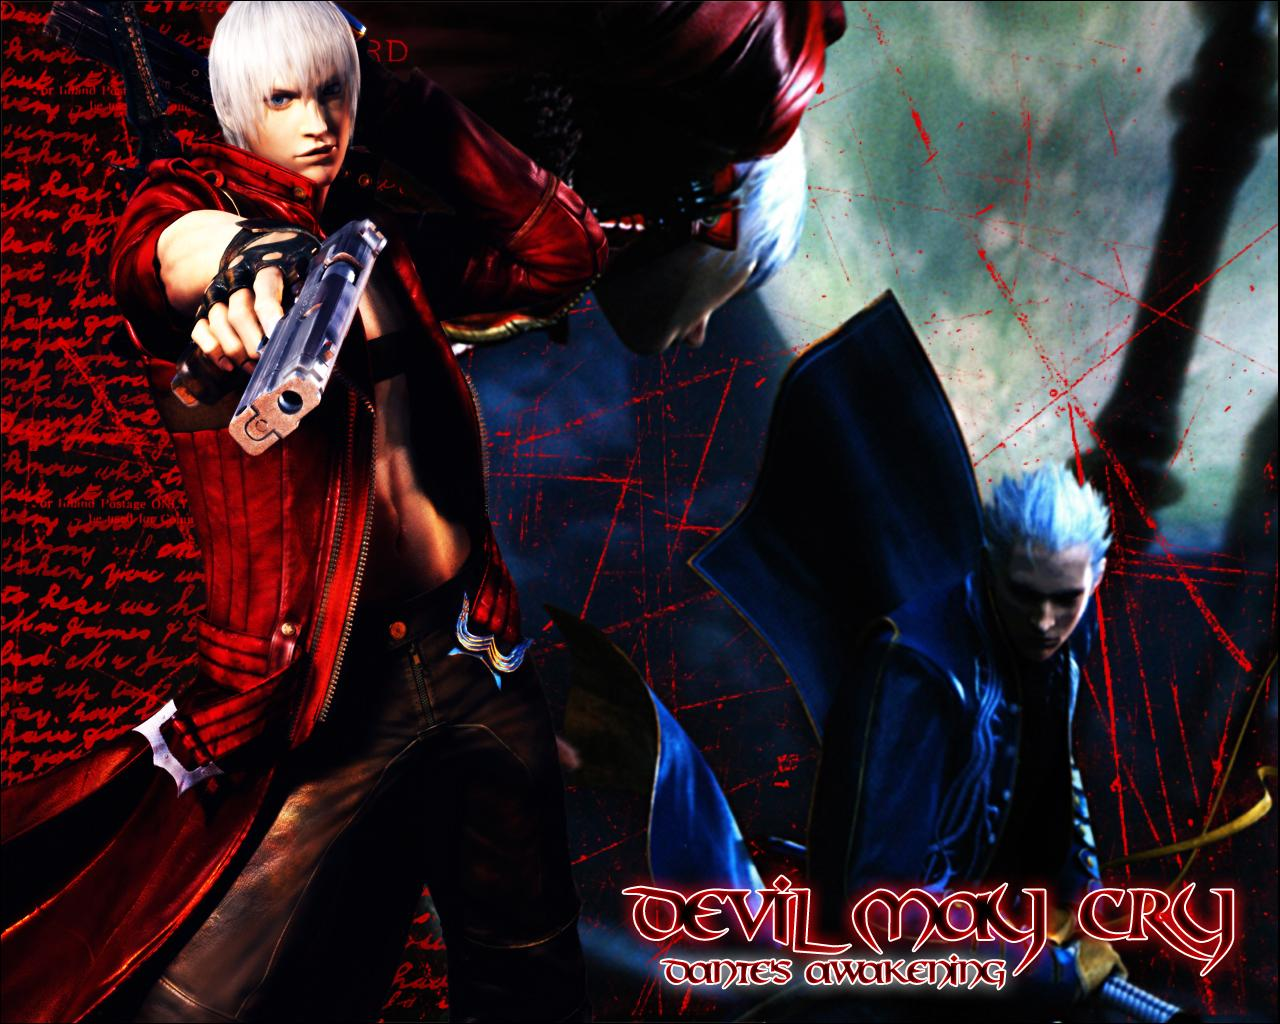 Wallpaper Dante Devil May Cry Devil May Cry 3 Vdeo Game